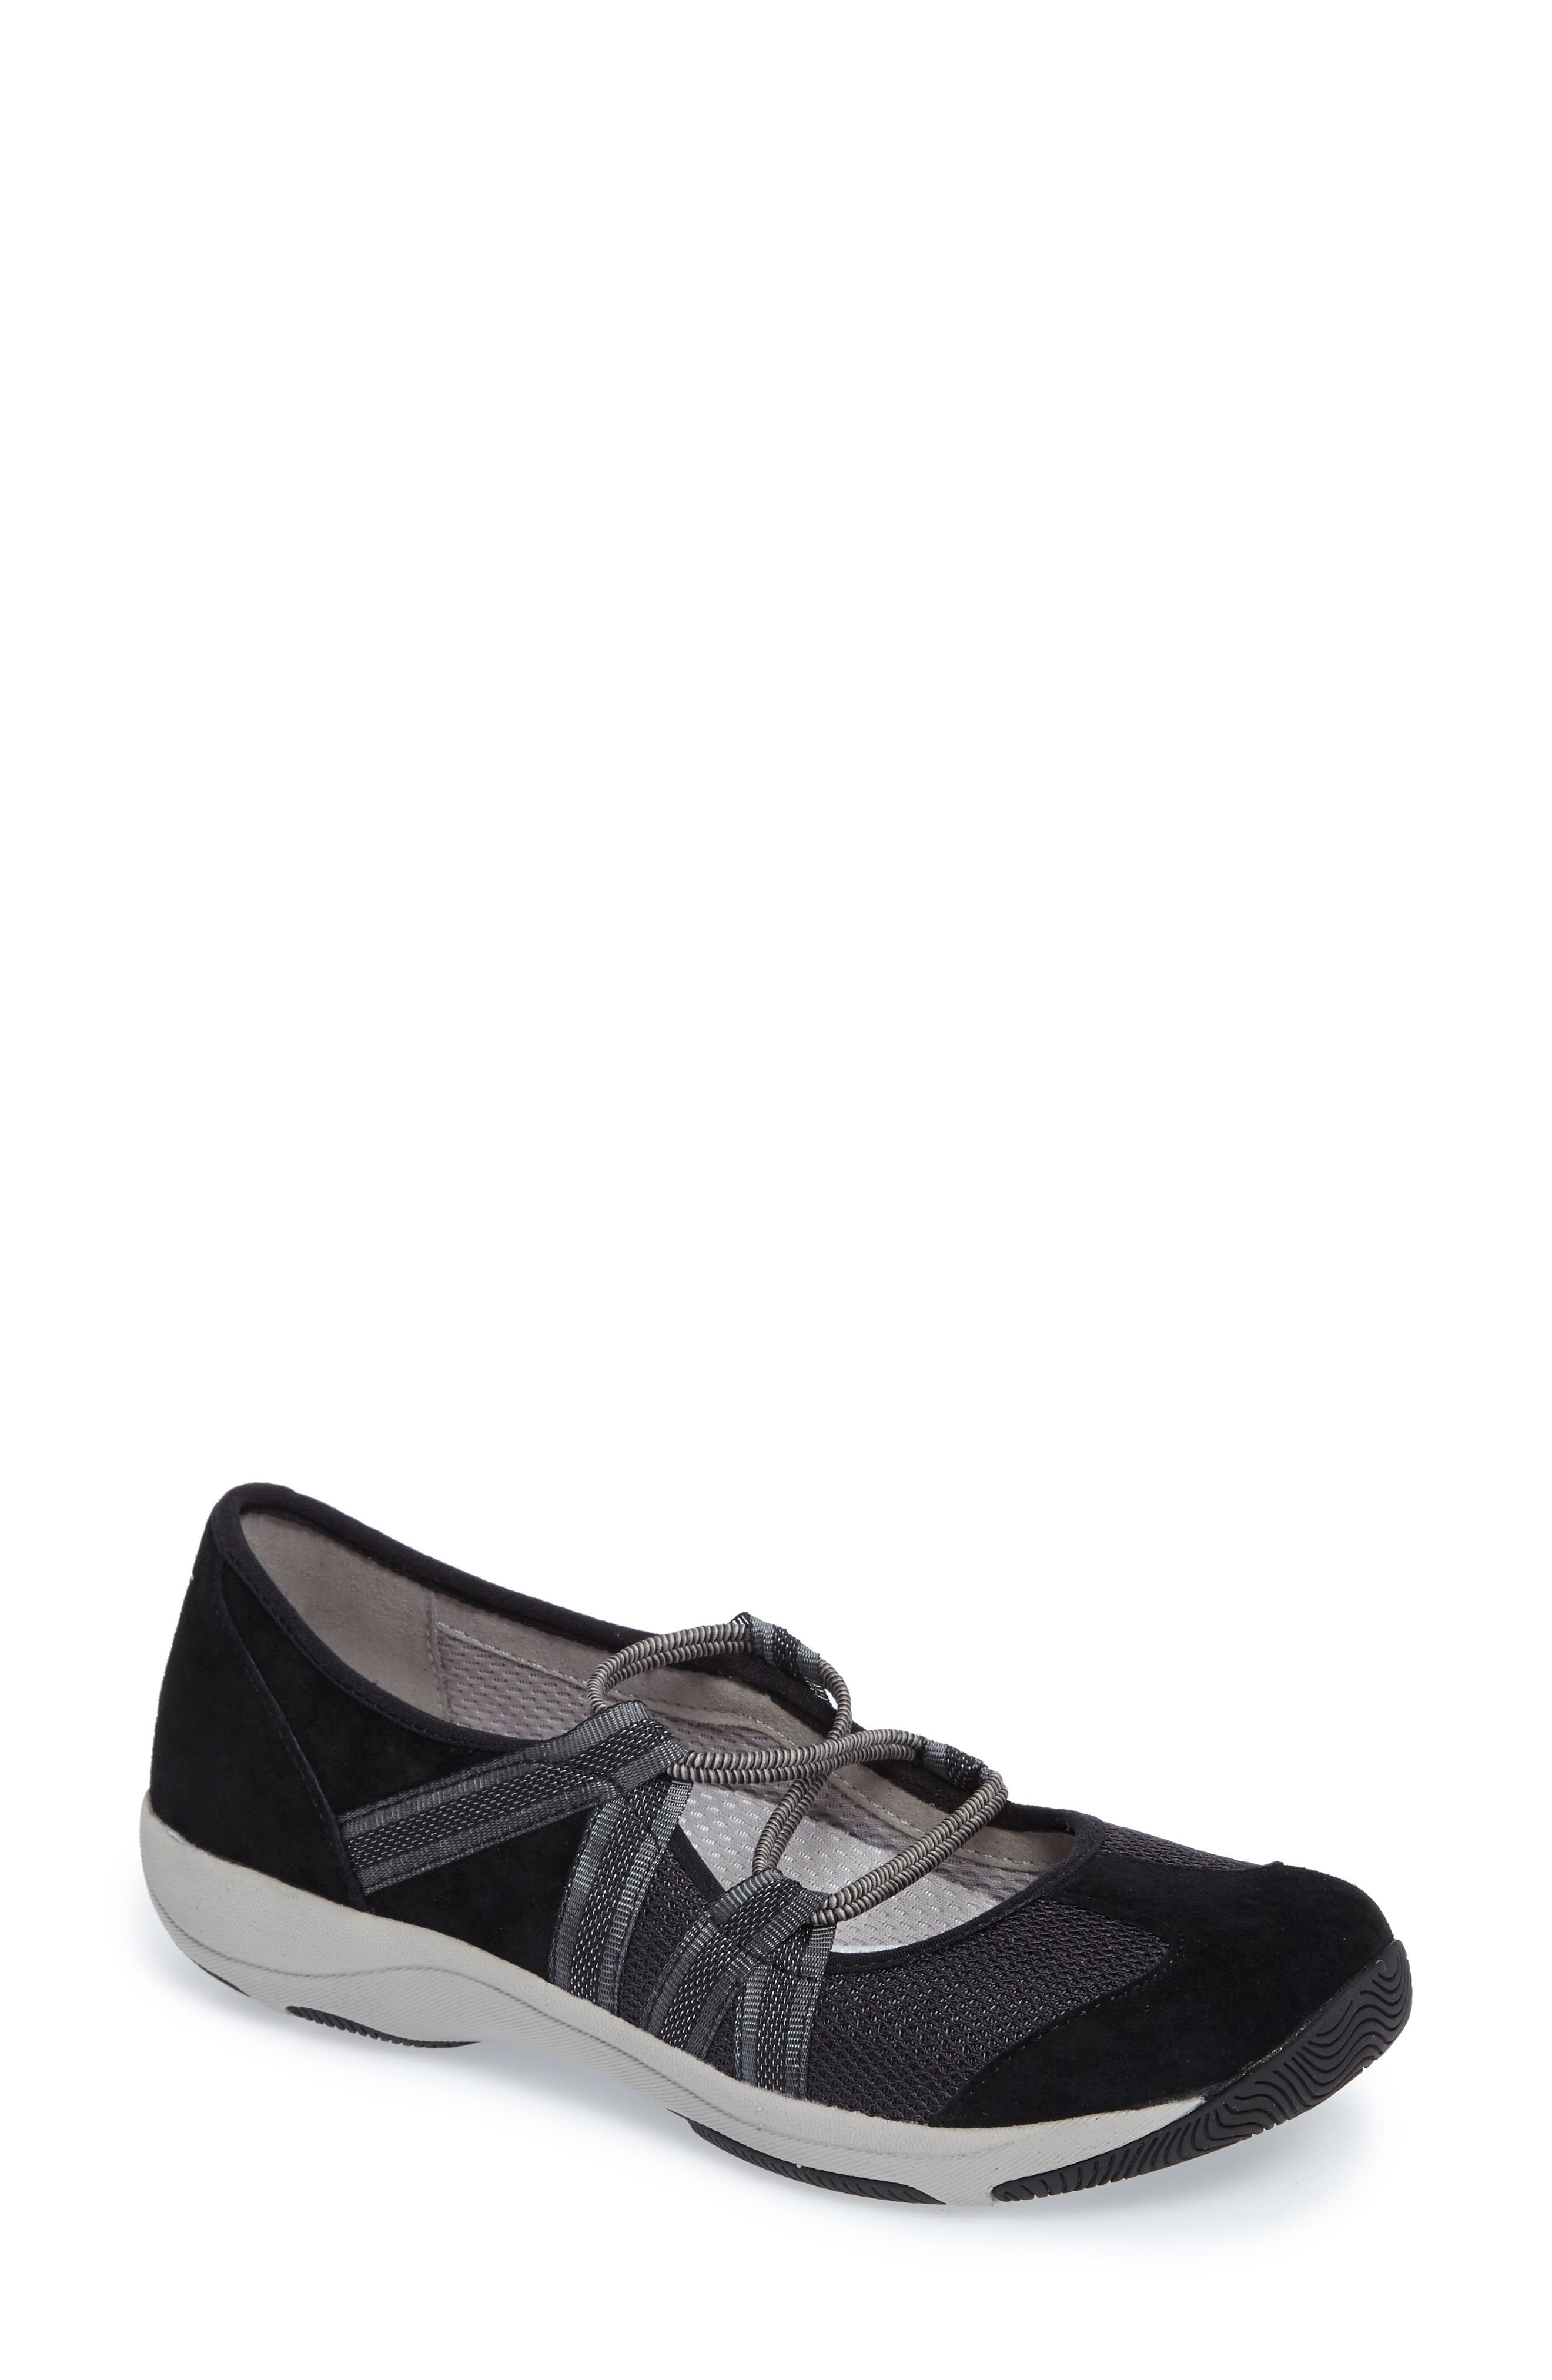 Dansko Honey Slip-On Sneaker (Women)